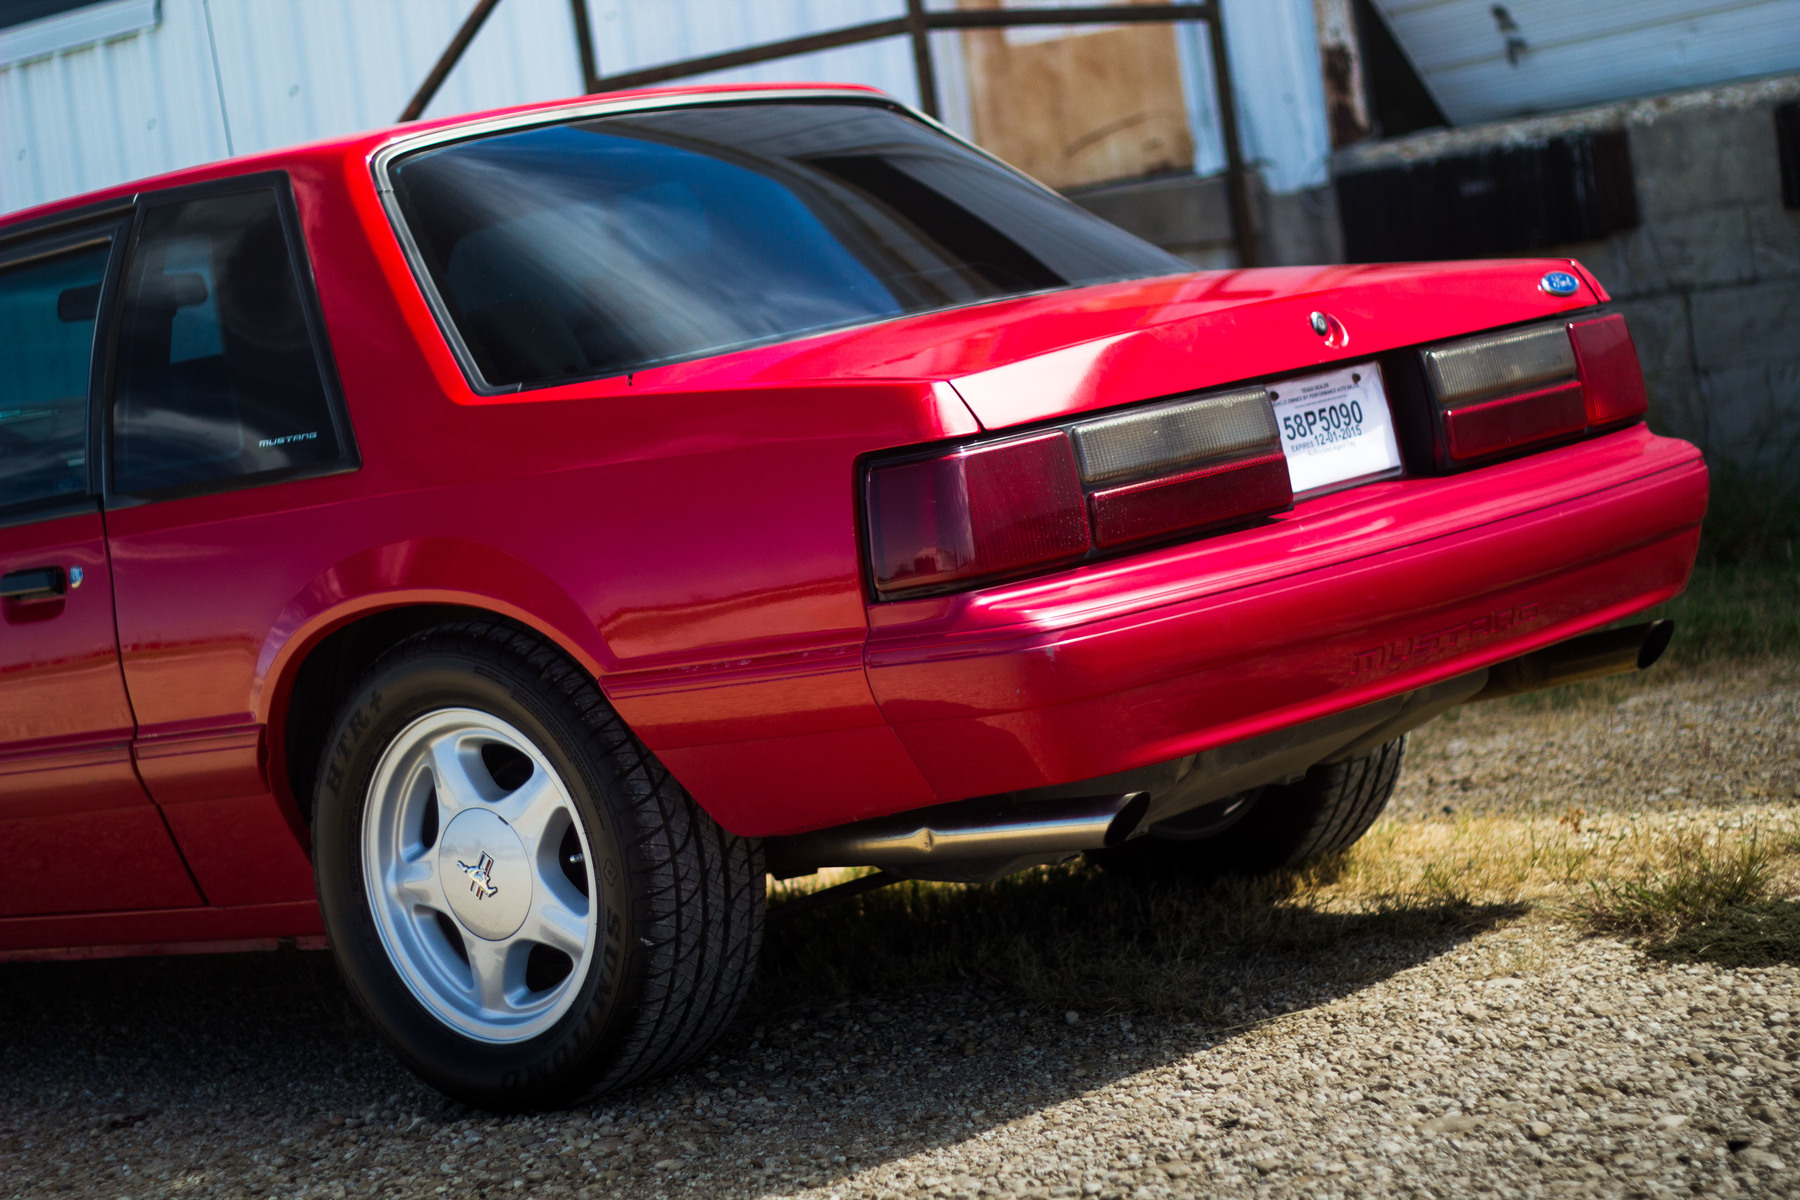 What Is A Notchback Mustang? - What Is A Notchback Mustang?